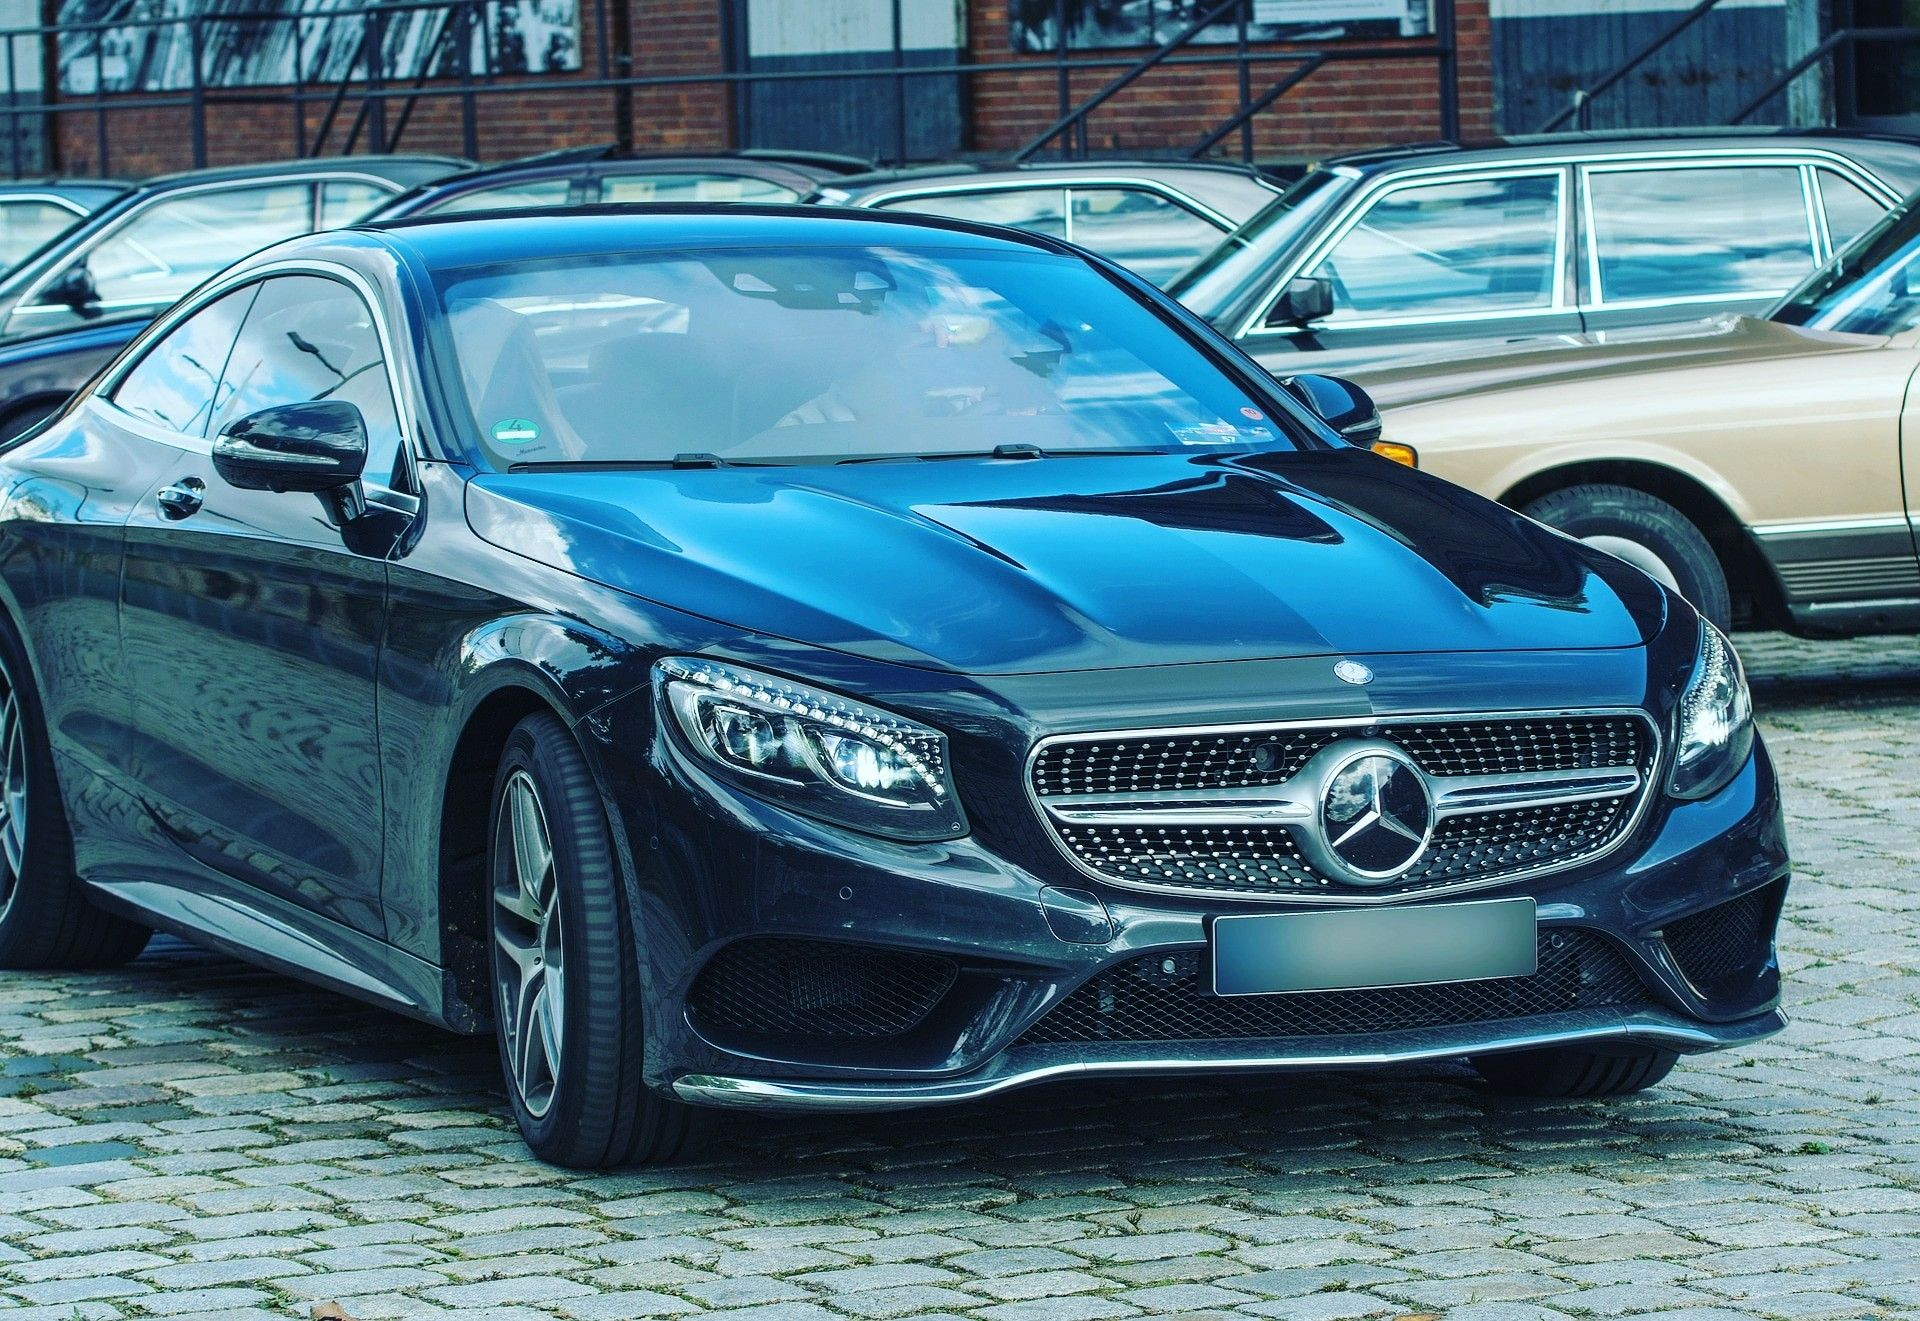 Heathrow Airport To London City Chauffeur Driven Deals Luxury